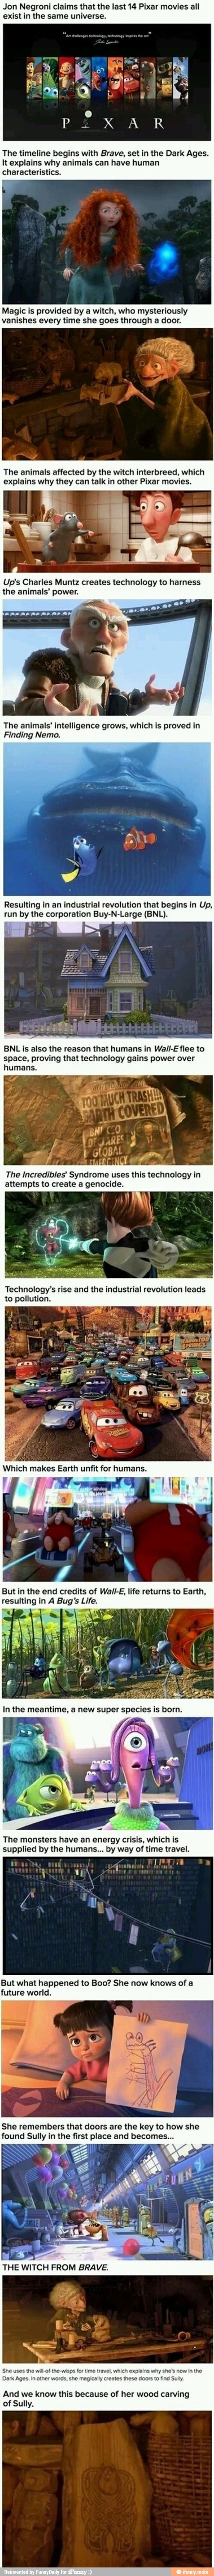 The Pixar Theory changed everything!!!